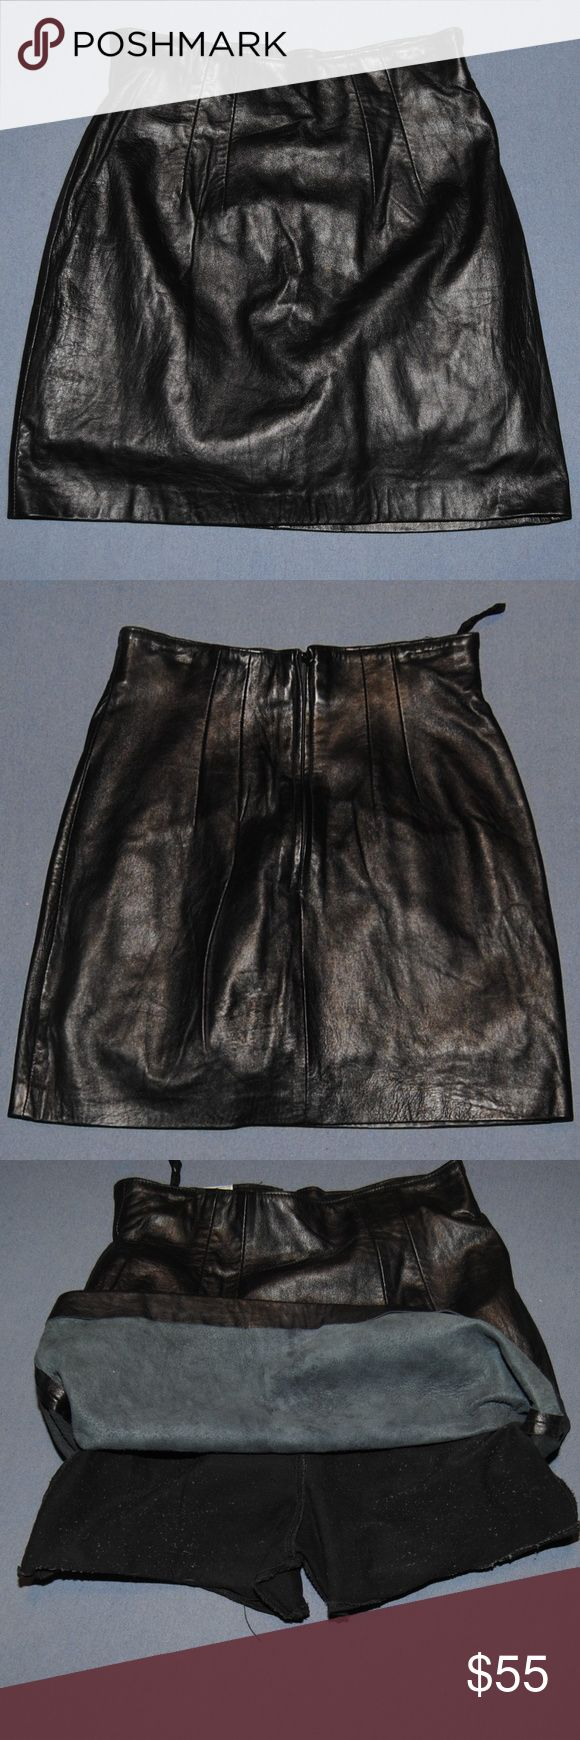 """UNIQUE Leather Mini Skirt with attached shorts So adorable and sexy. This skirt is intended as a tennis or sports skirt but I think the attached shorts make it easy club attire. The skirt shell is 100% leather the attached shorts are 100% acetate Tag size 6 Waist measures 12.5"""" inches Length is 16"""" inches Skirt is in excellent condition ( the piling you see on the shorts is from the leather on the inside of the skirt) Erez Sport Skirts Mini"""